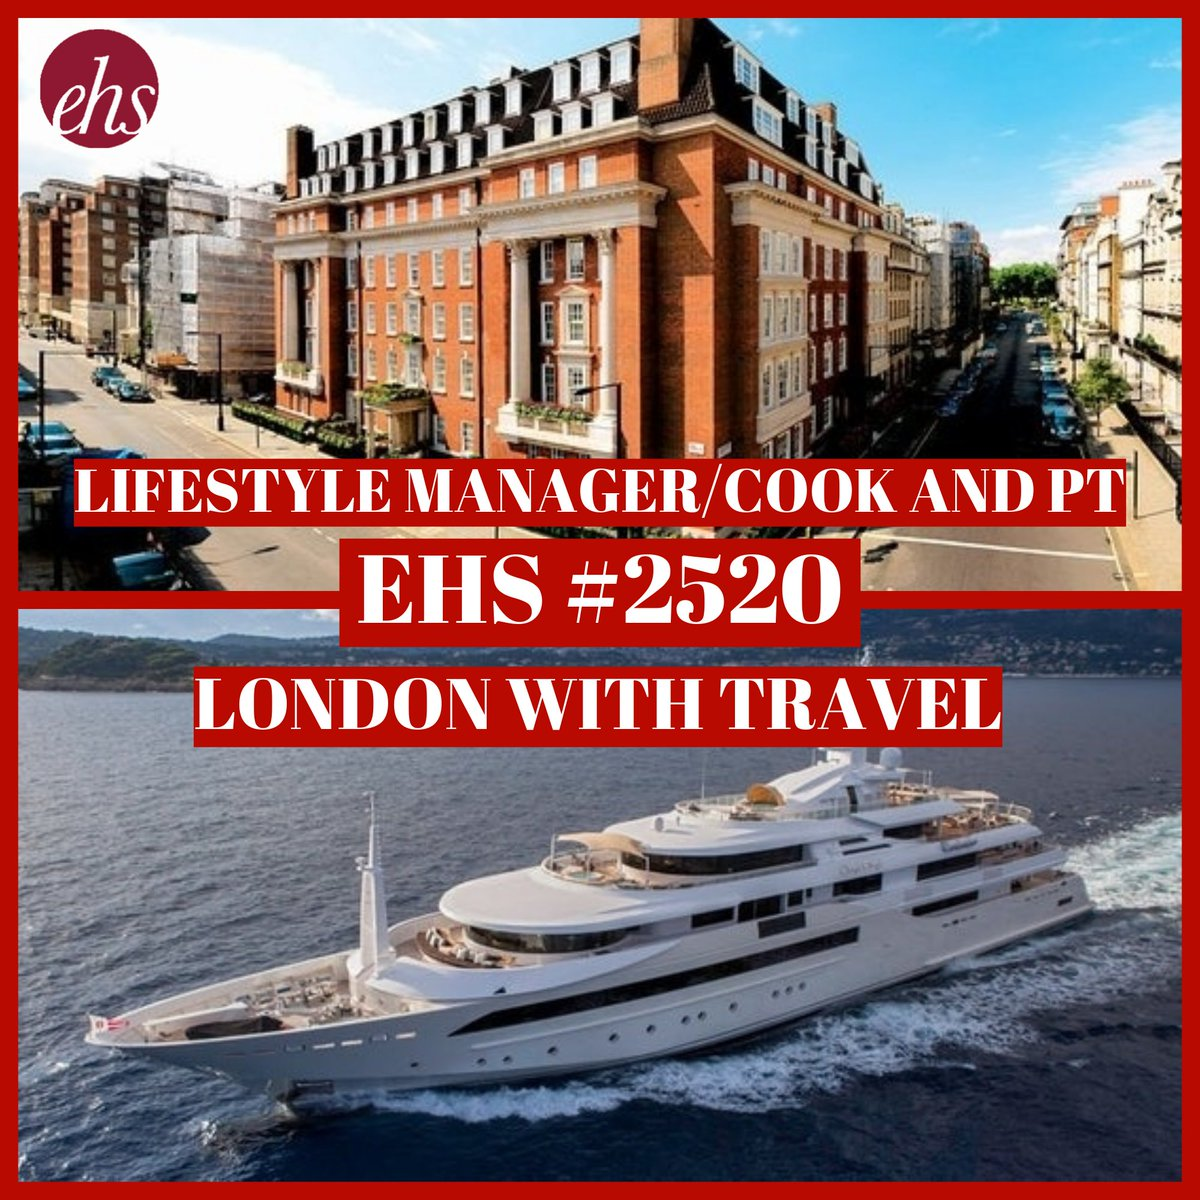 https://www.exclusivehouseholdstaff.com/vacancies/view/lifestyle-manager-travelling-cook-and-pt…  #LifestyleManager #PrivateCook #PrivatePersonalTrainer #PrivatePT #PrivateLifestyleManager #lifestylemanagement #TravellingCook #TravellingPT #LondonLifestyleManager #LondonCook #PrivateChef #LondonPT #LondonPersonalTrainer #PersonalTrainerJobpic.twitter.com/3XNktOKHmN